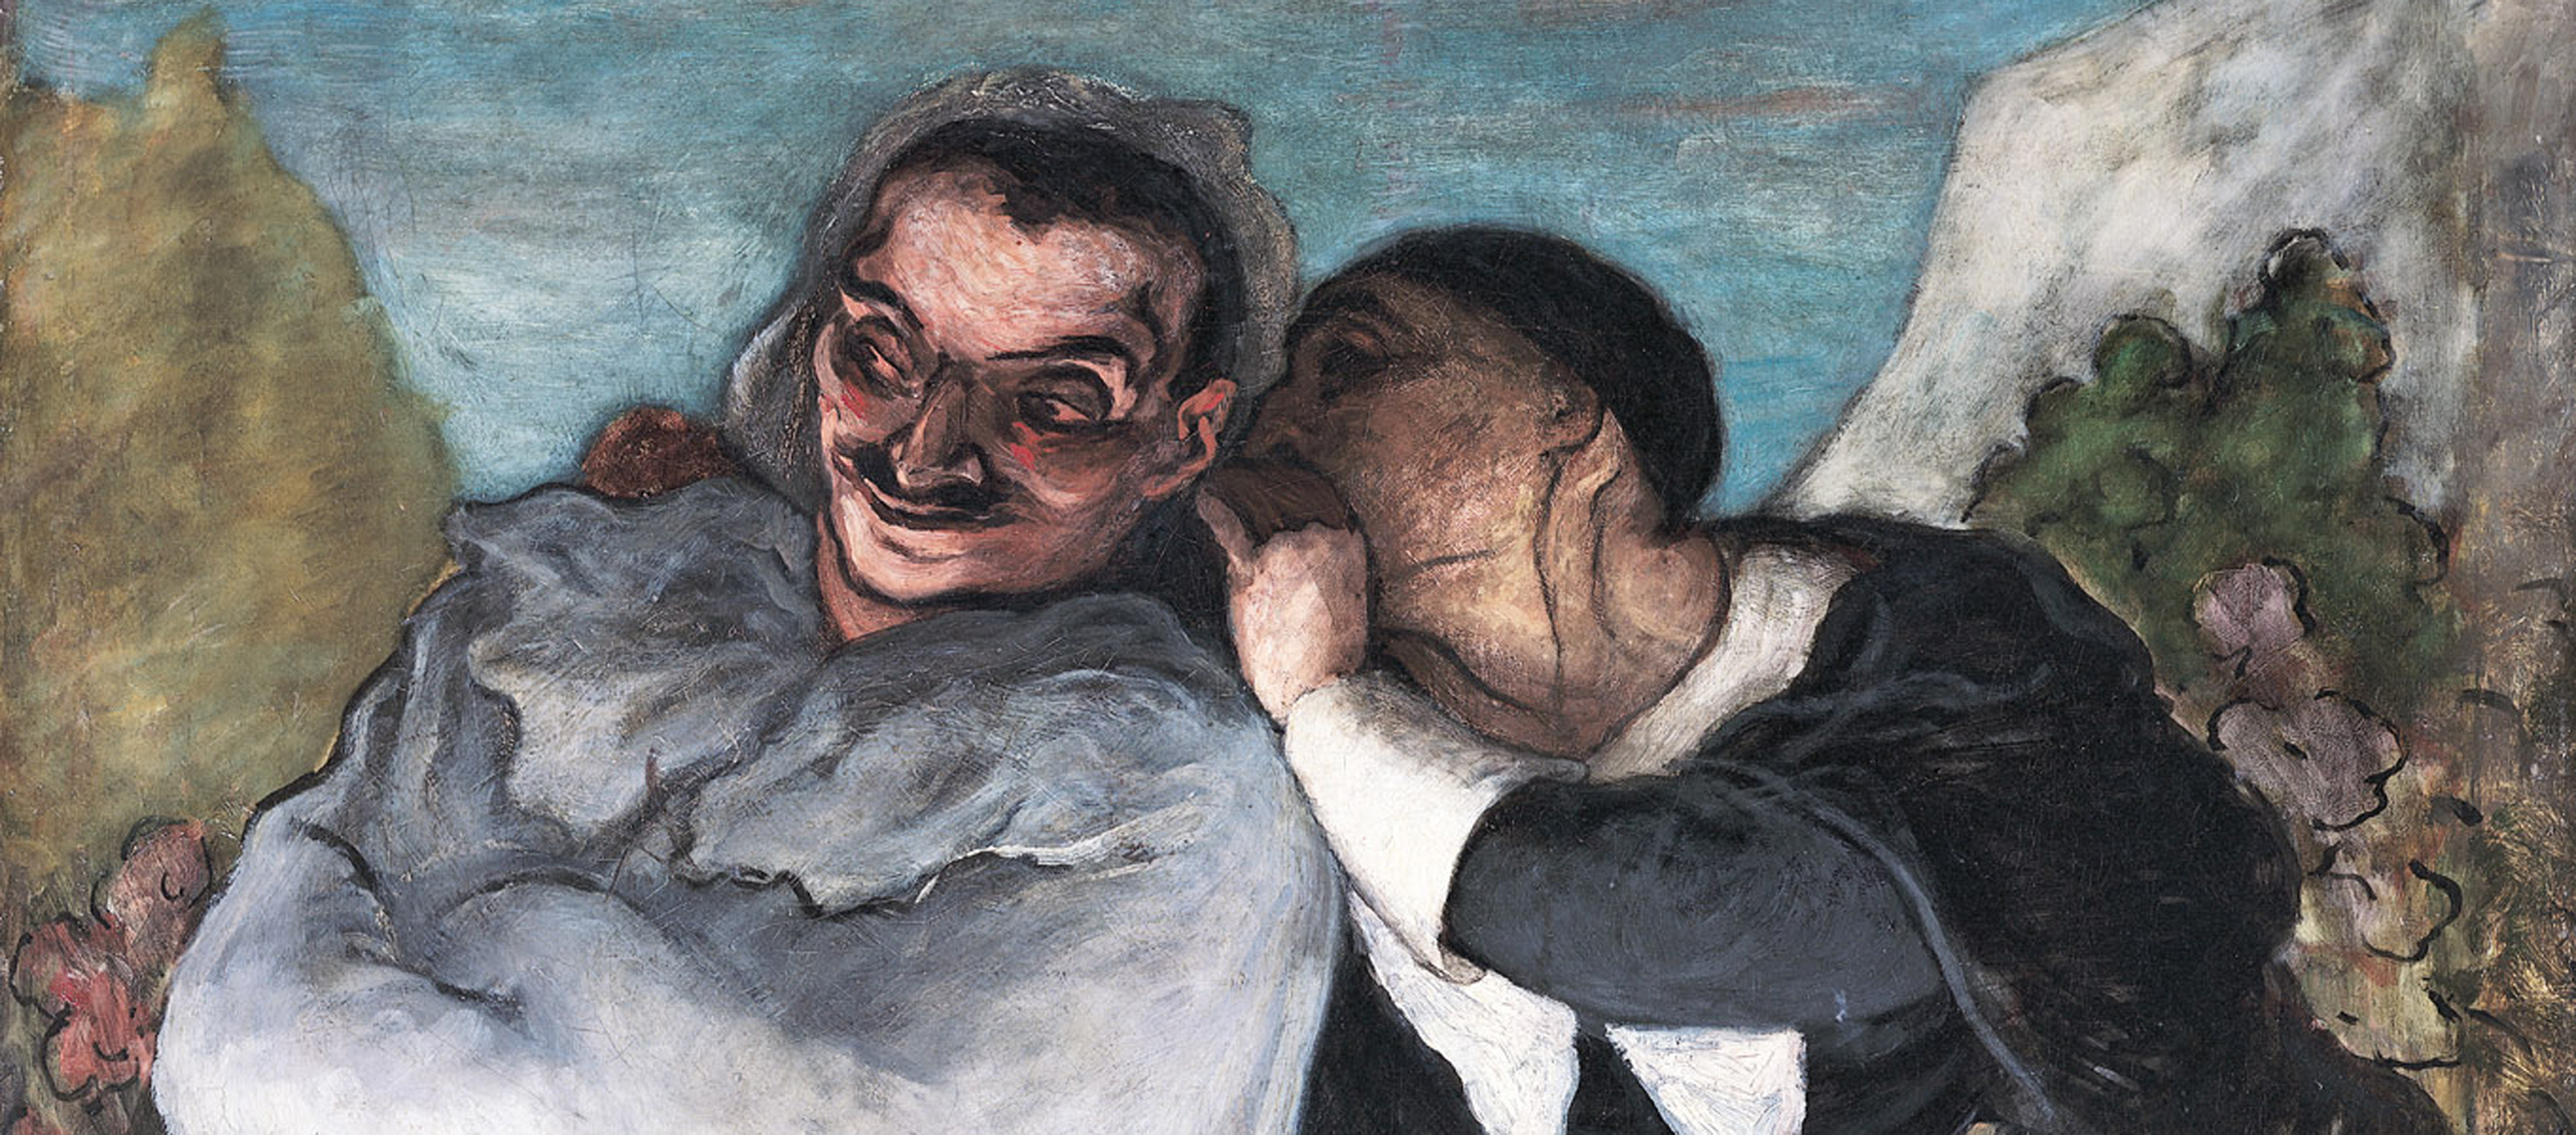 Crispin and Scapin, by Honore Daumier, c. 1864.